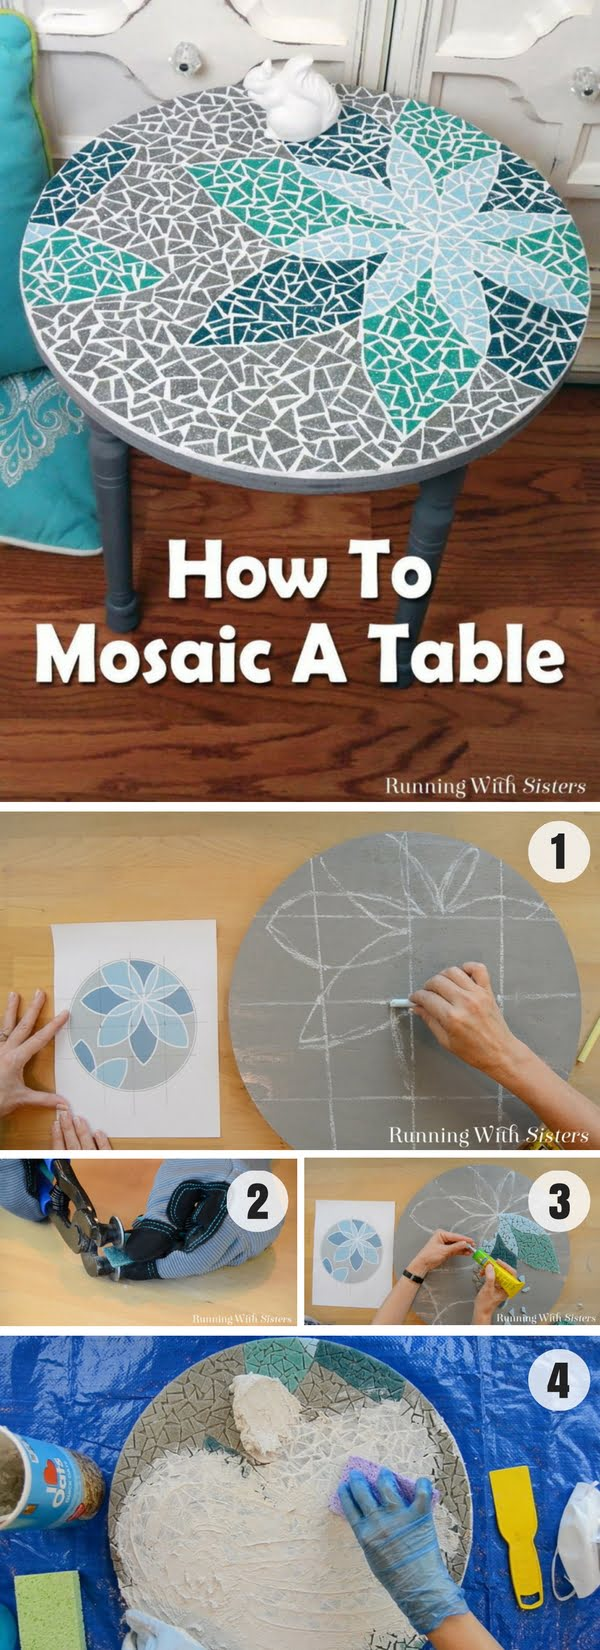 30 stunning diy mosaic craft projects for easy home decor 30 stunning diy mosaic craft projects for easy home decor how to create a diy solutioingenieria Gallery